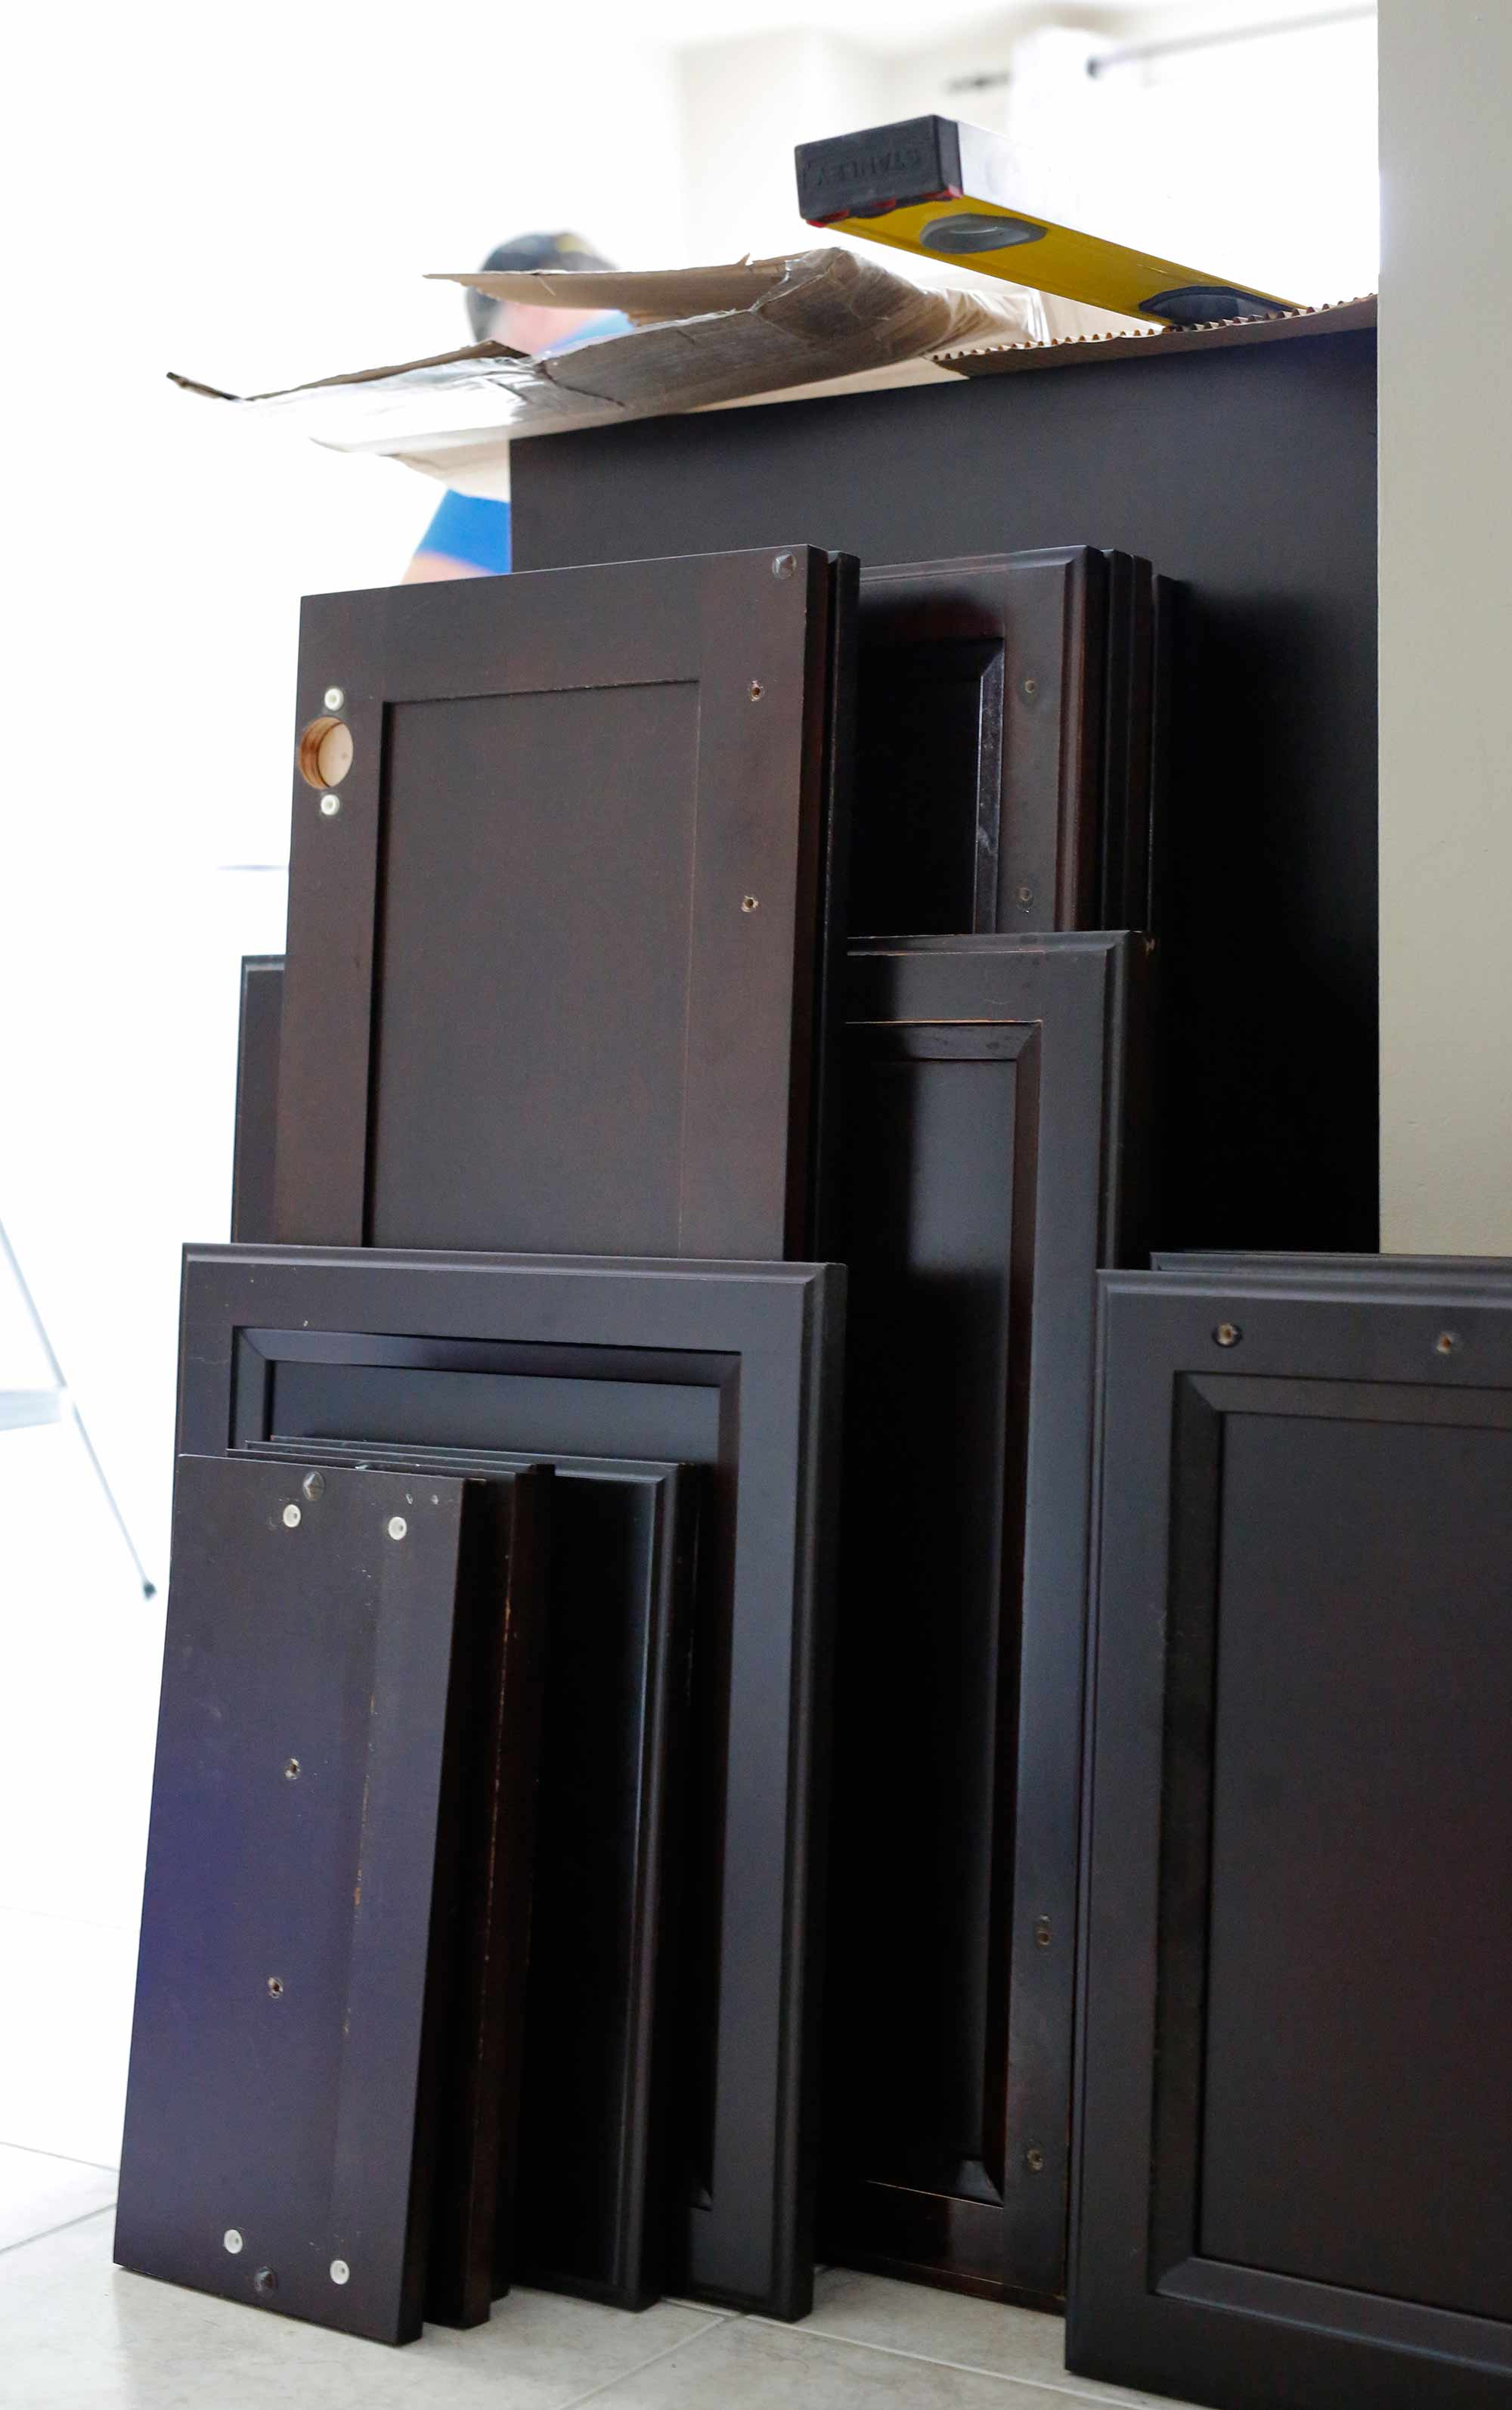 cabinet-doors-removed-discard